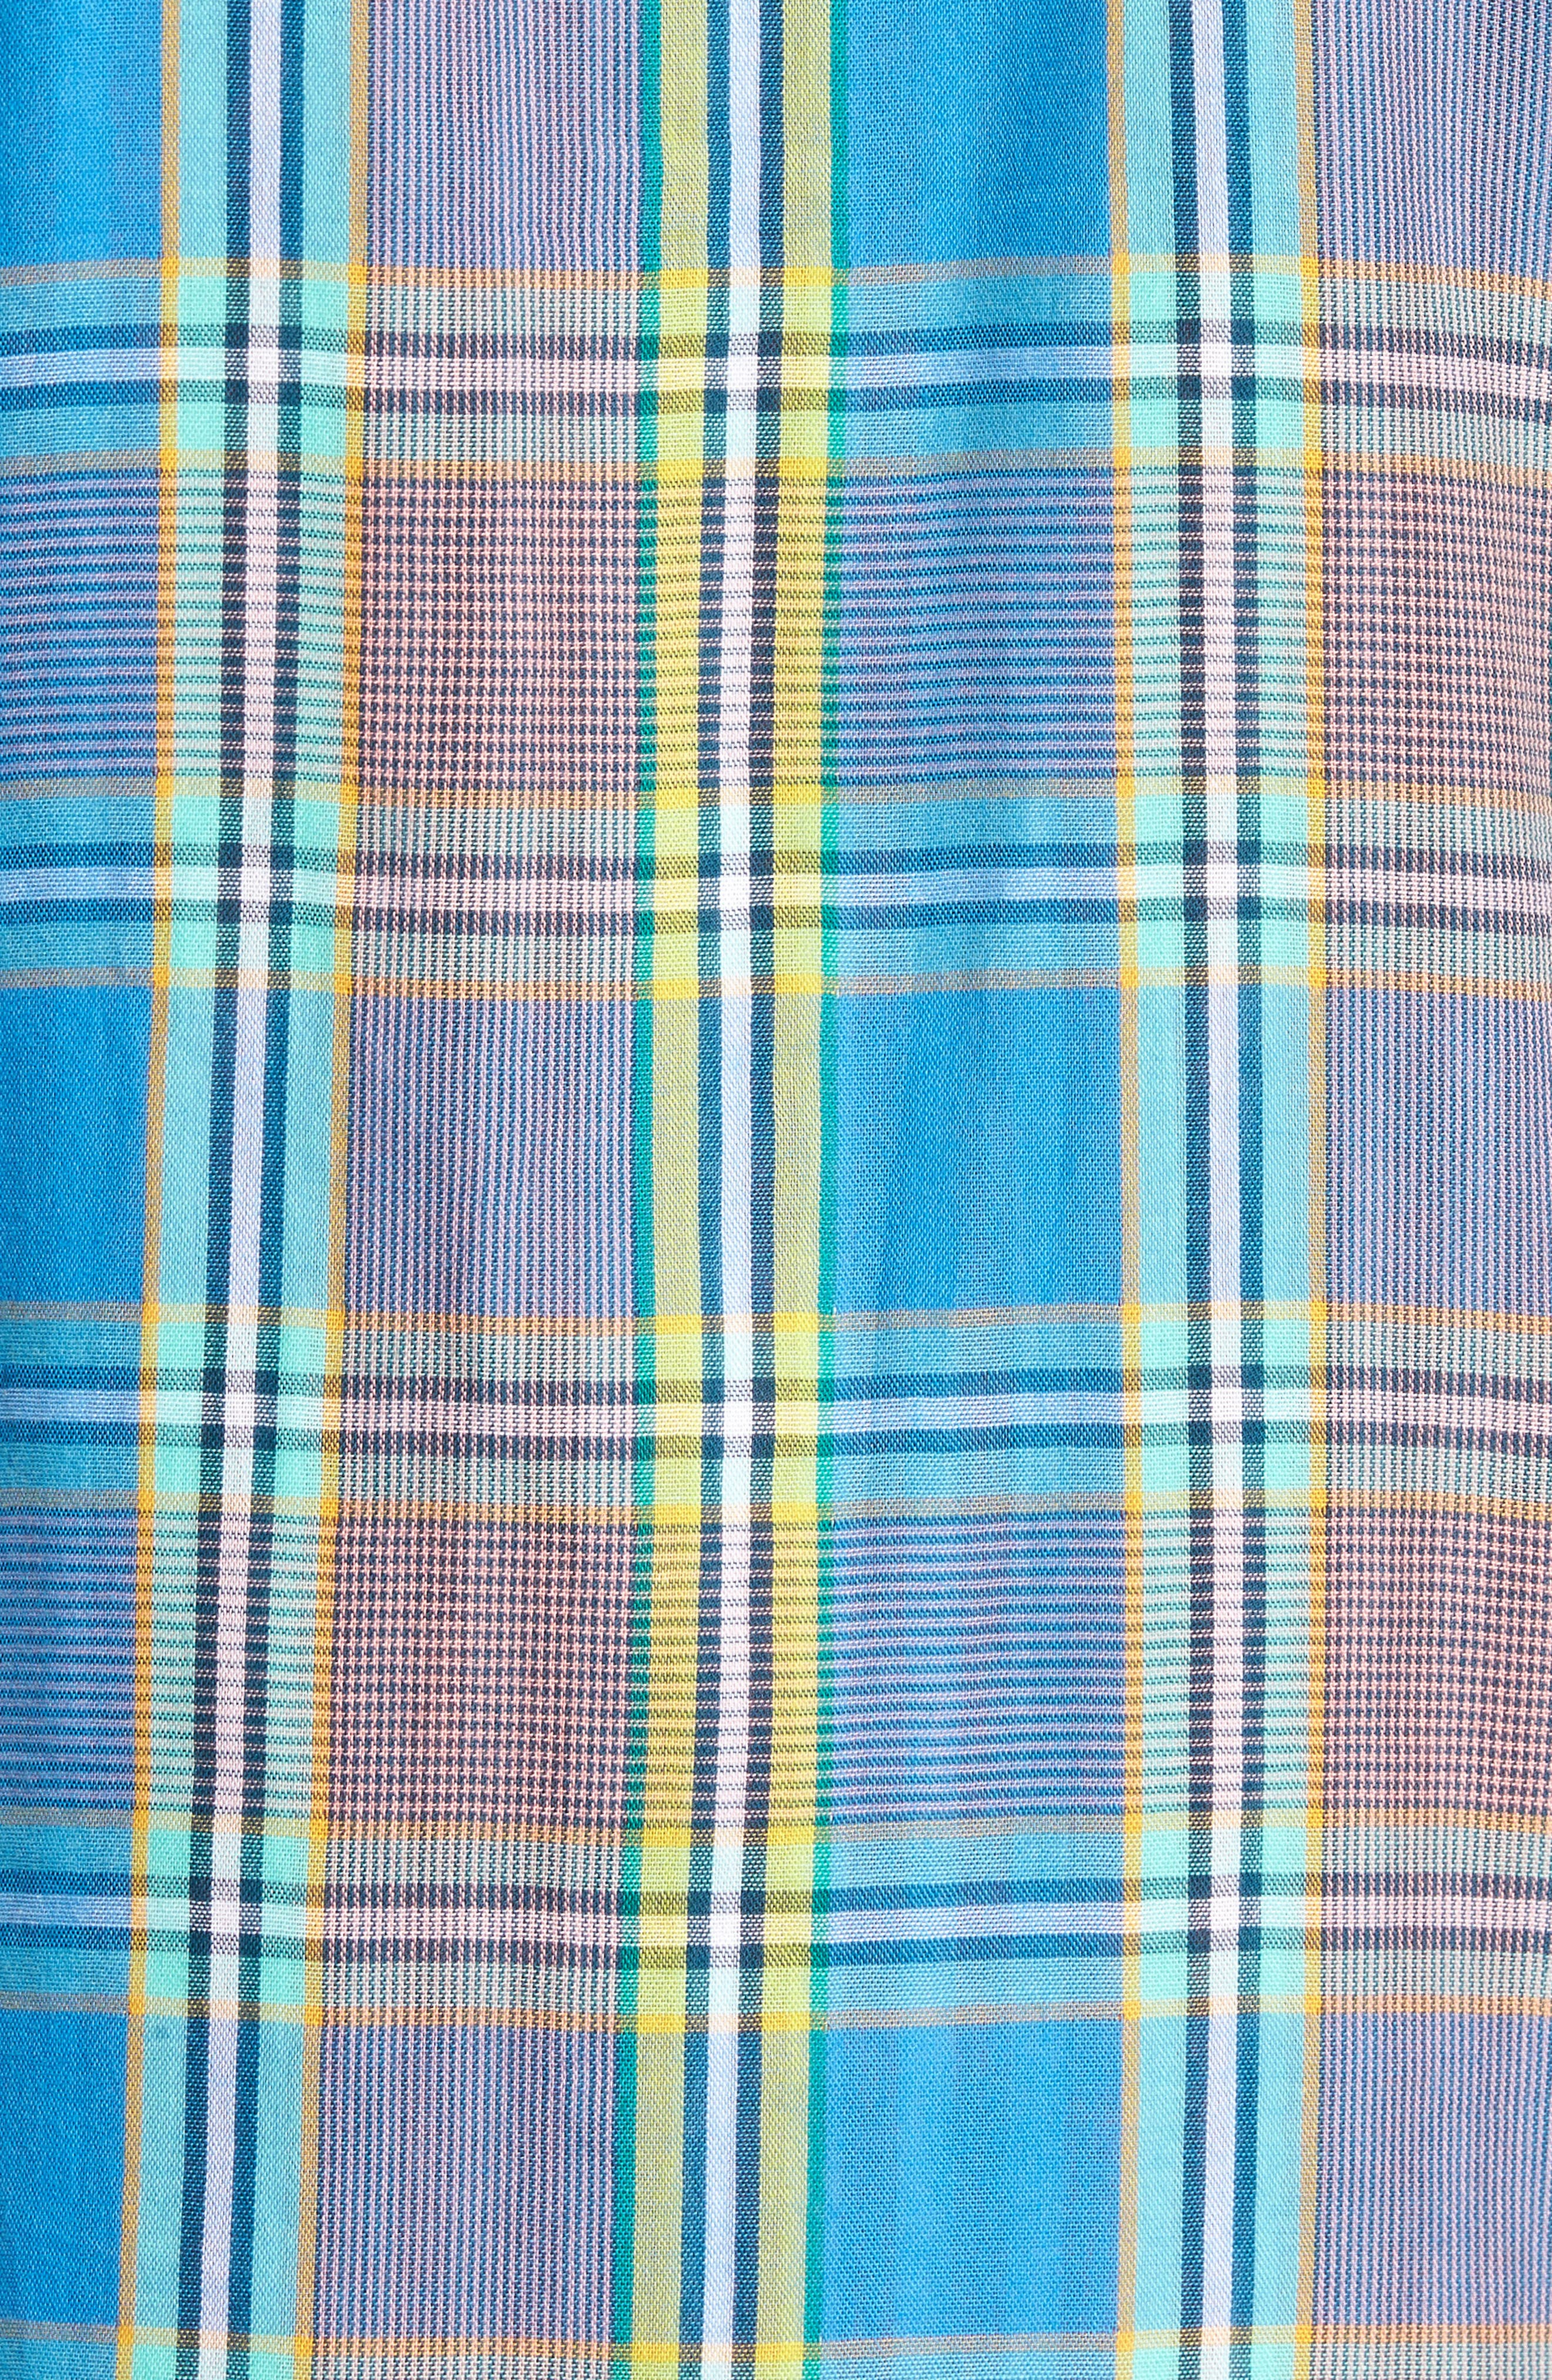 Short Sleeve Plaid Duofold Shirt,                             Alternate thumbnail 5, color,                             Blue Green Plaid Duo Fold